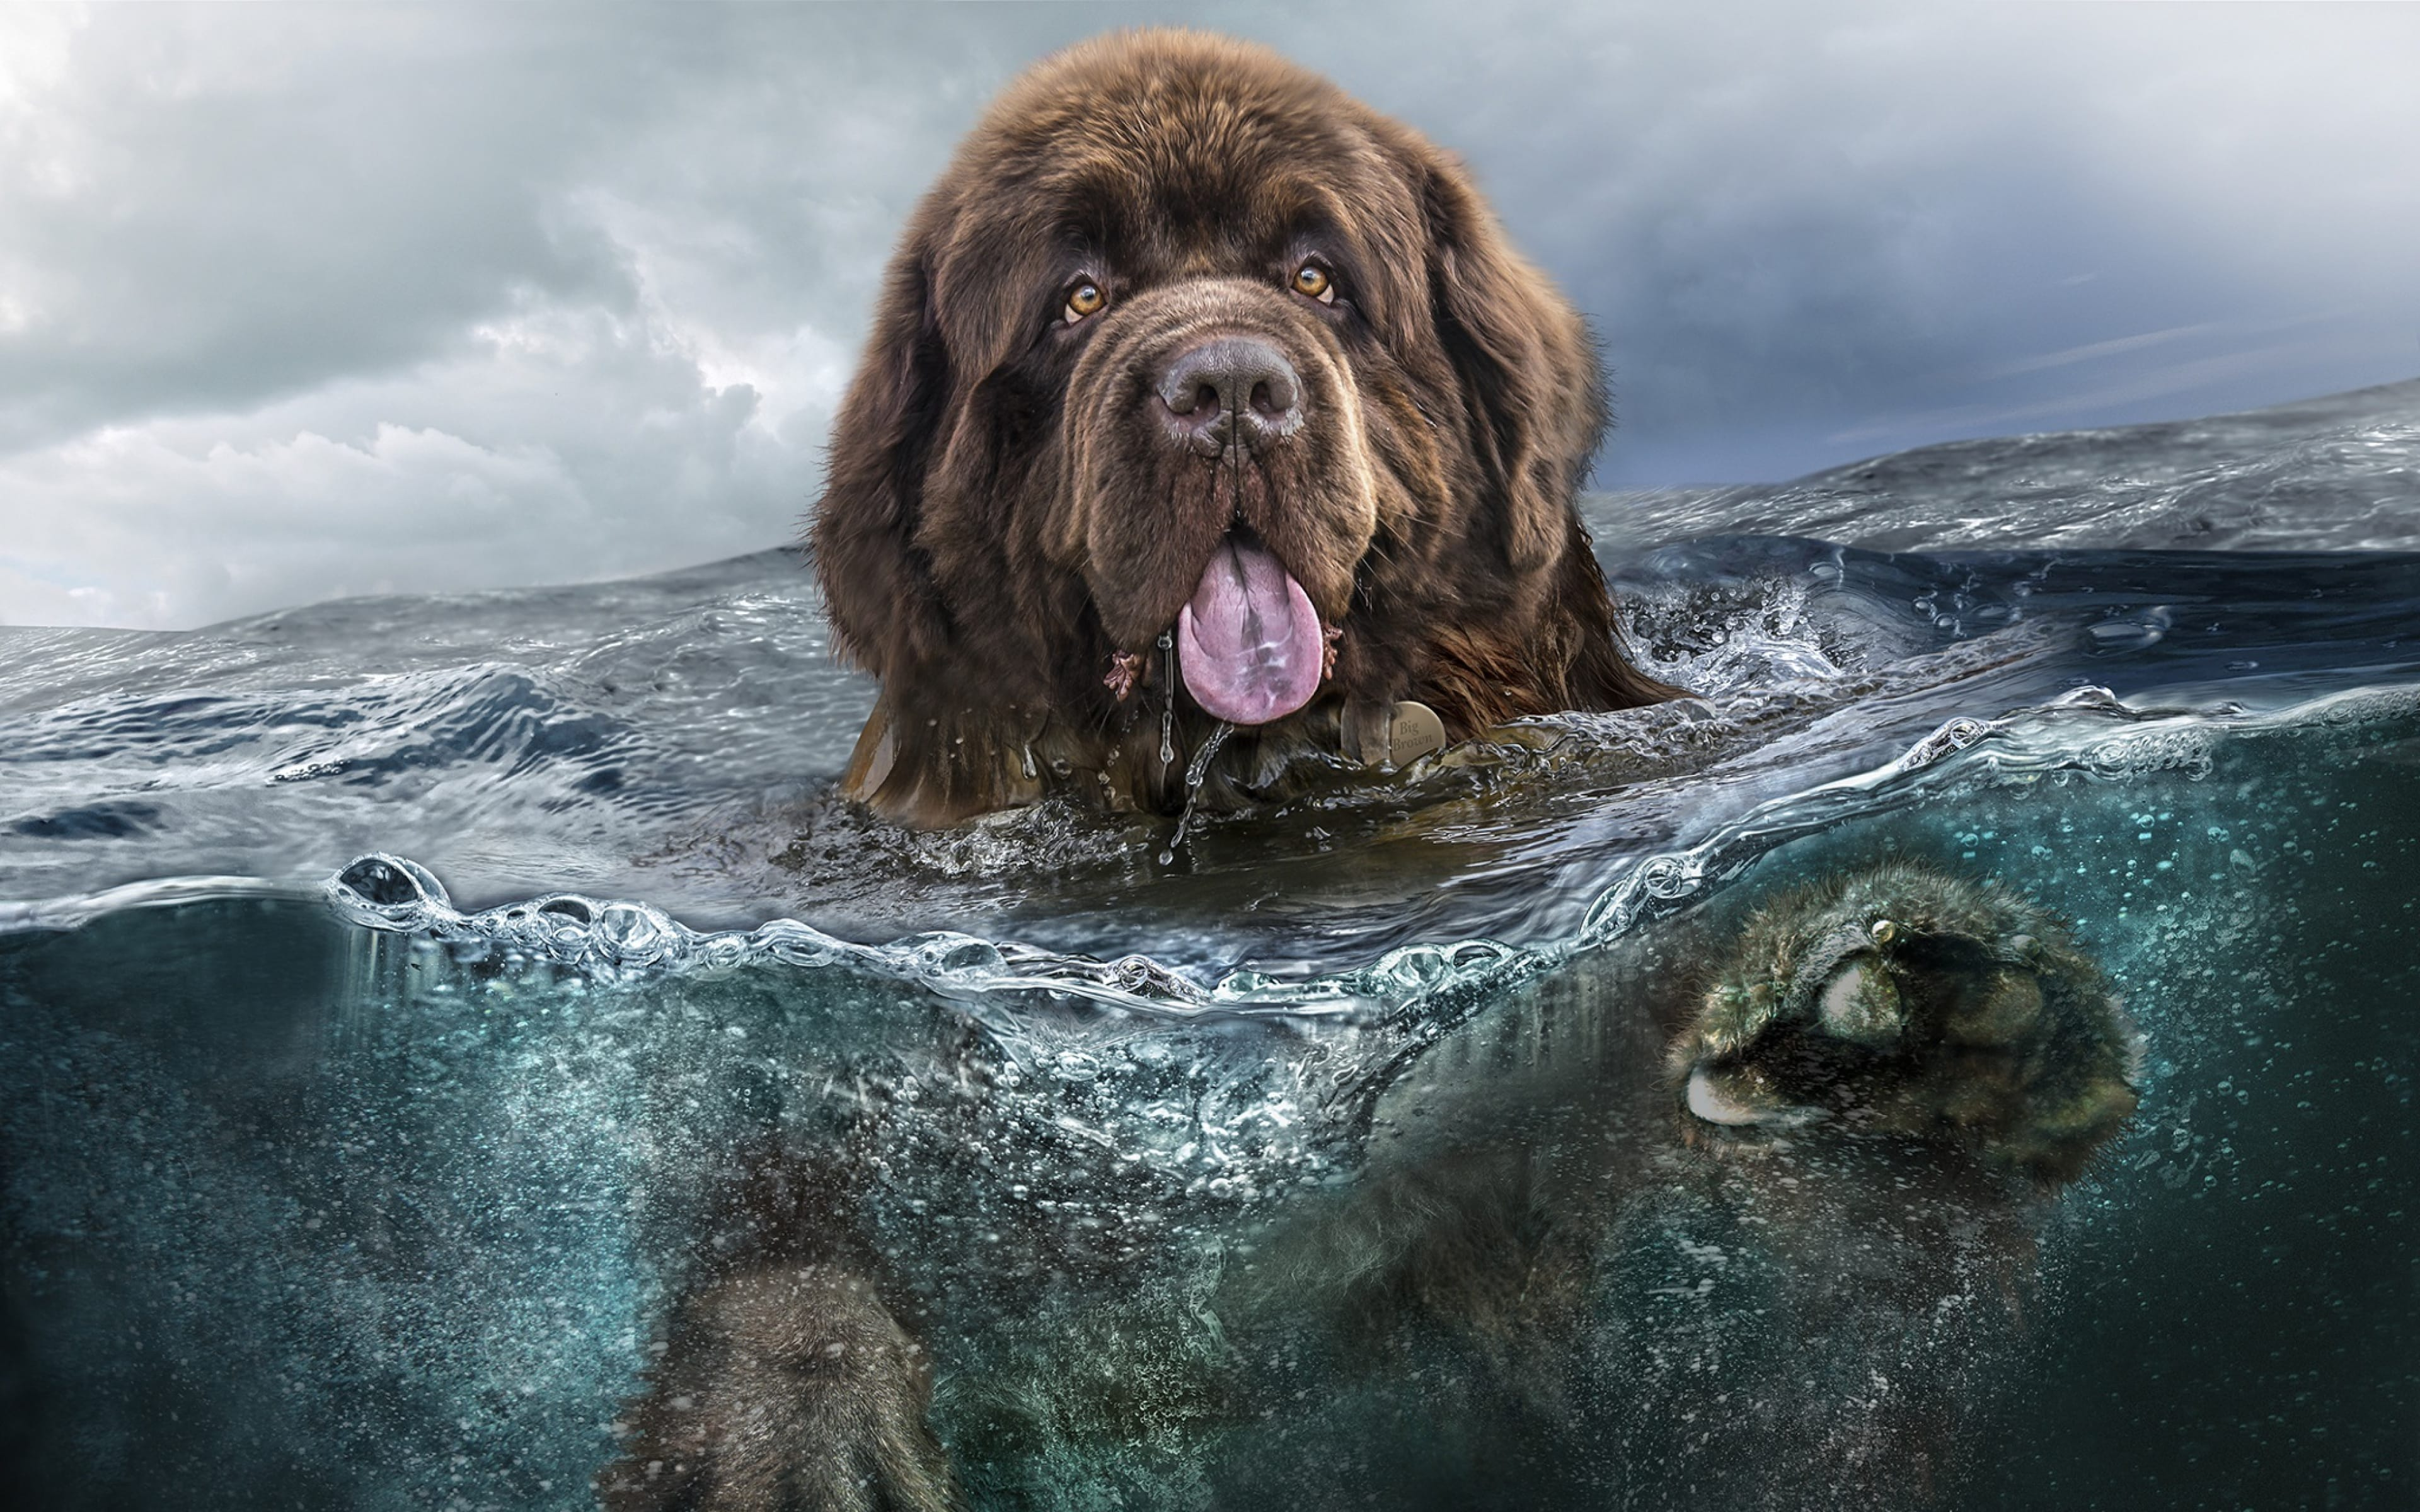 Newfoundland Dog HD Desktop Wallpapers | 7wallpapers.net